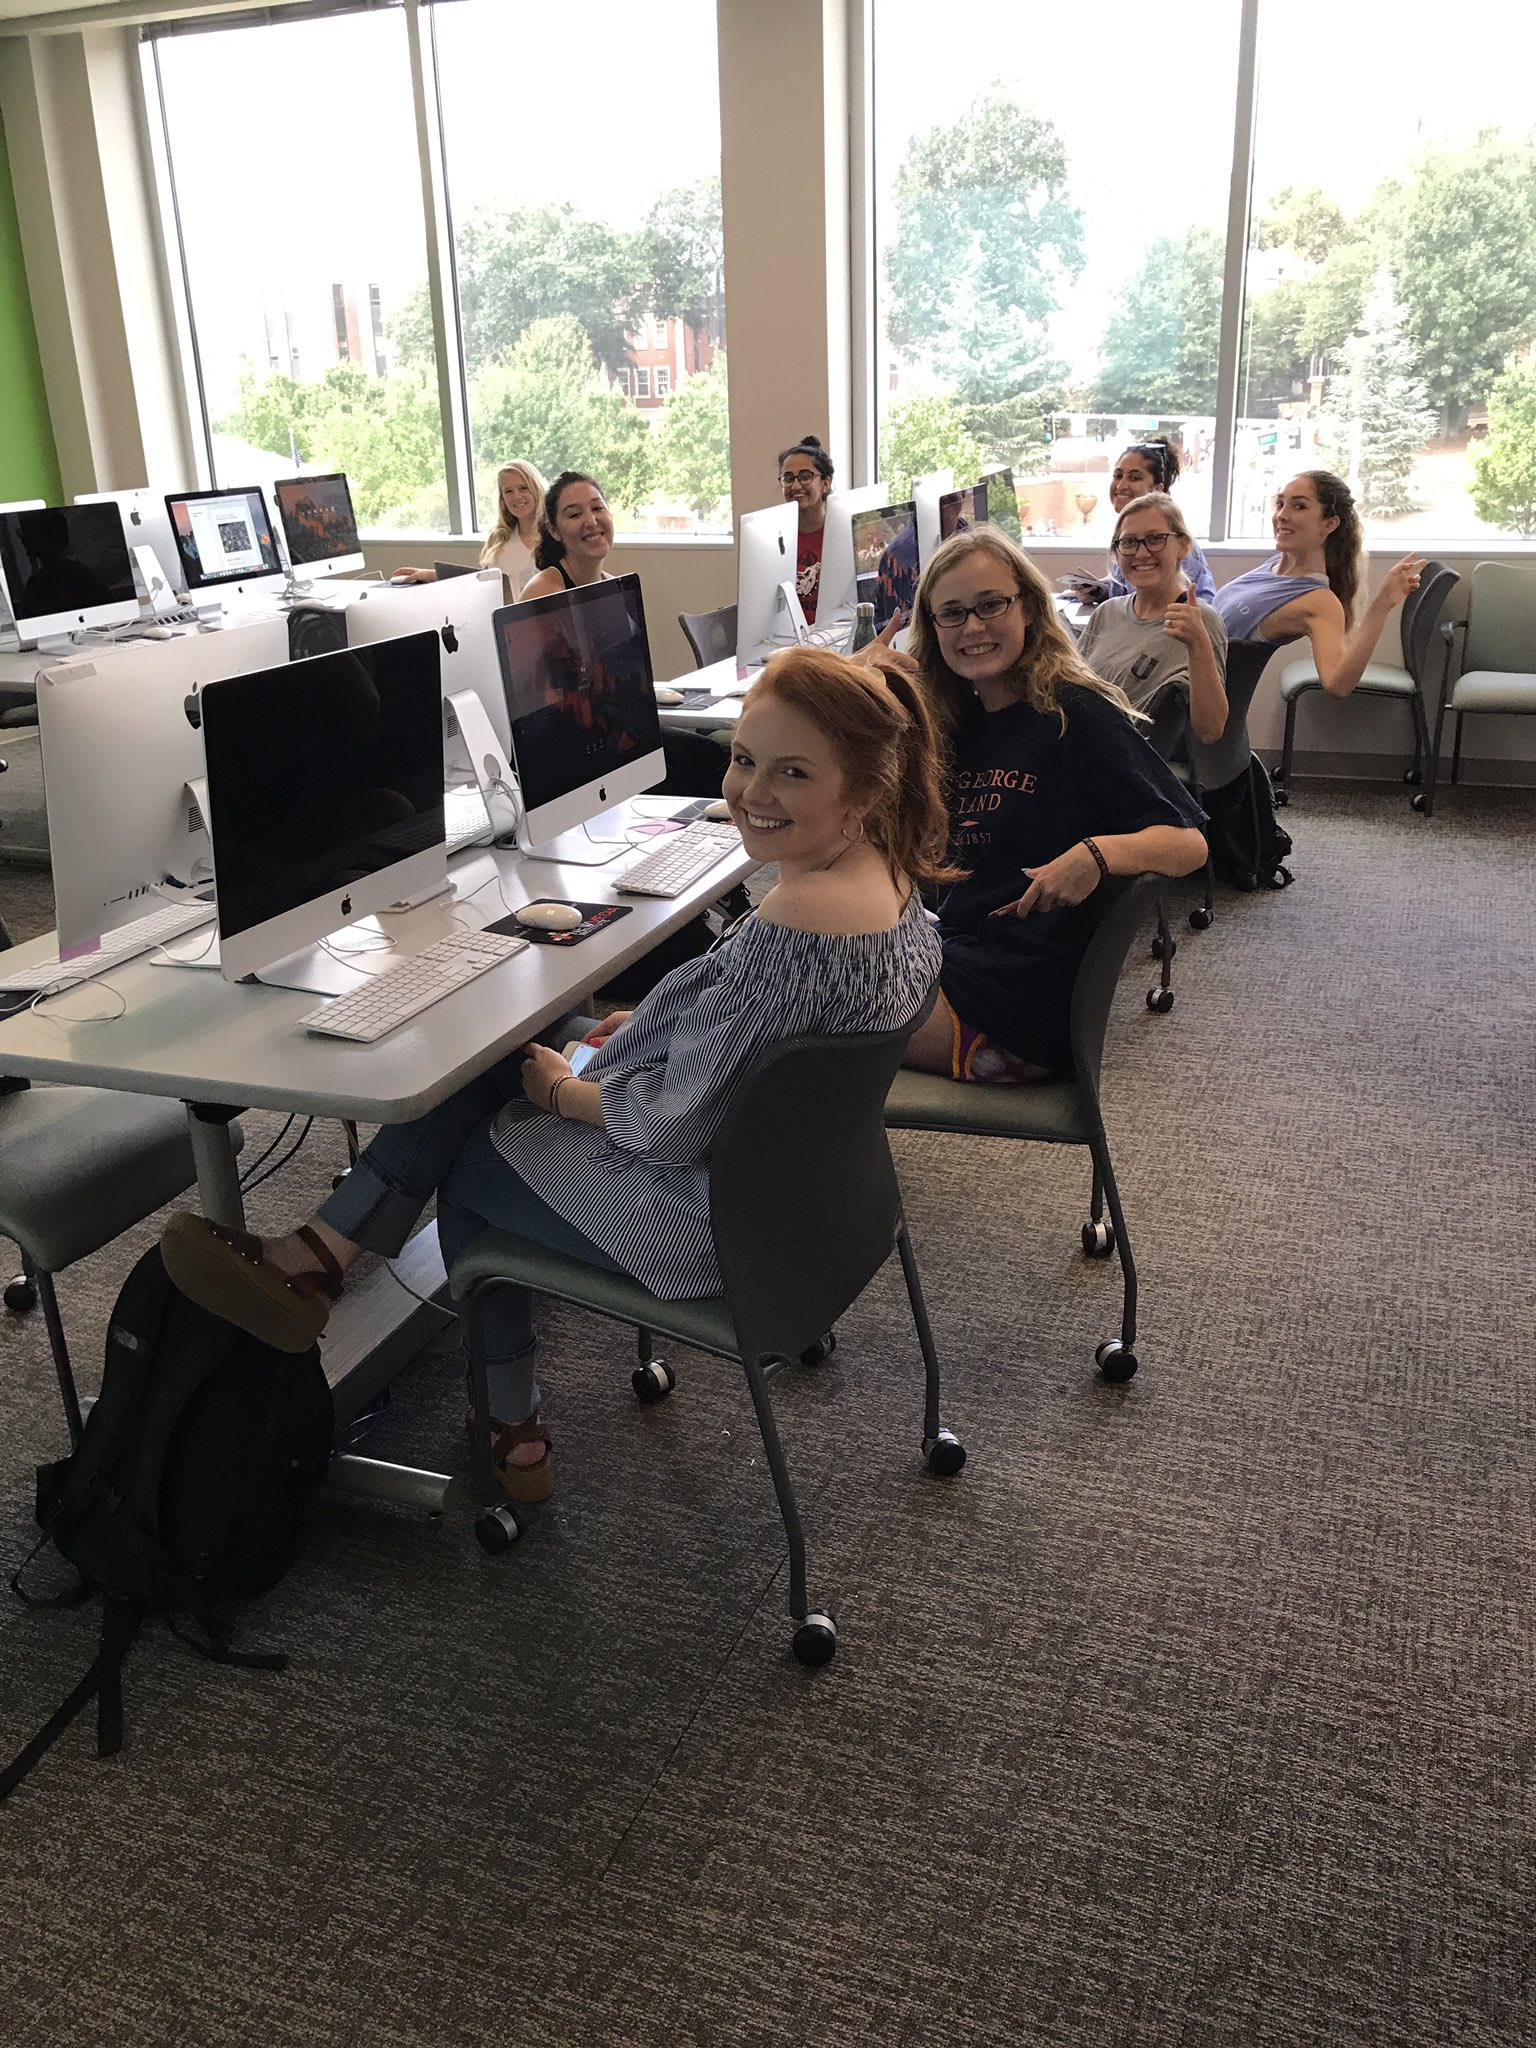 New Media students hard at work on a Friday afternoon. https://t.co/LEb6P7vRs2